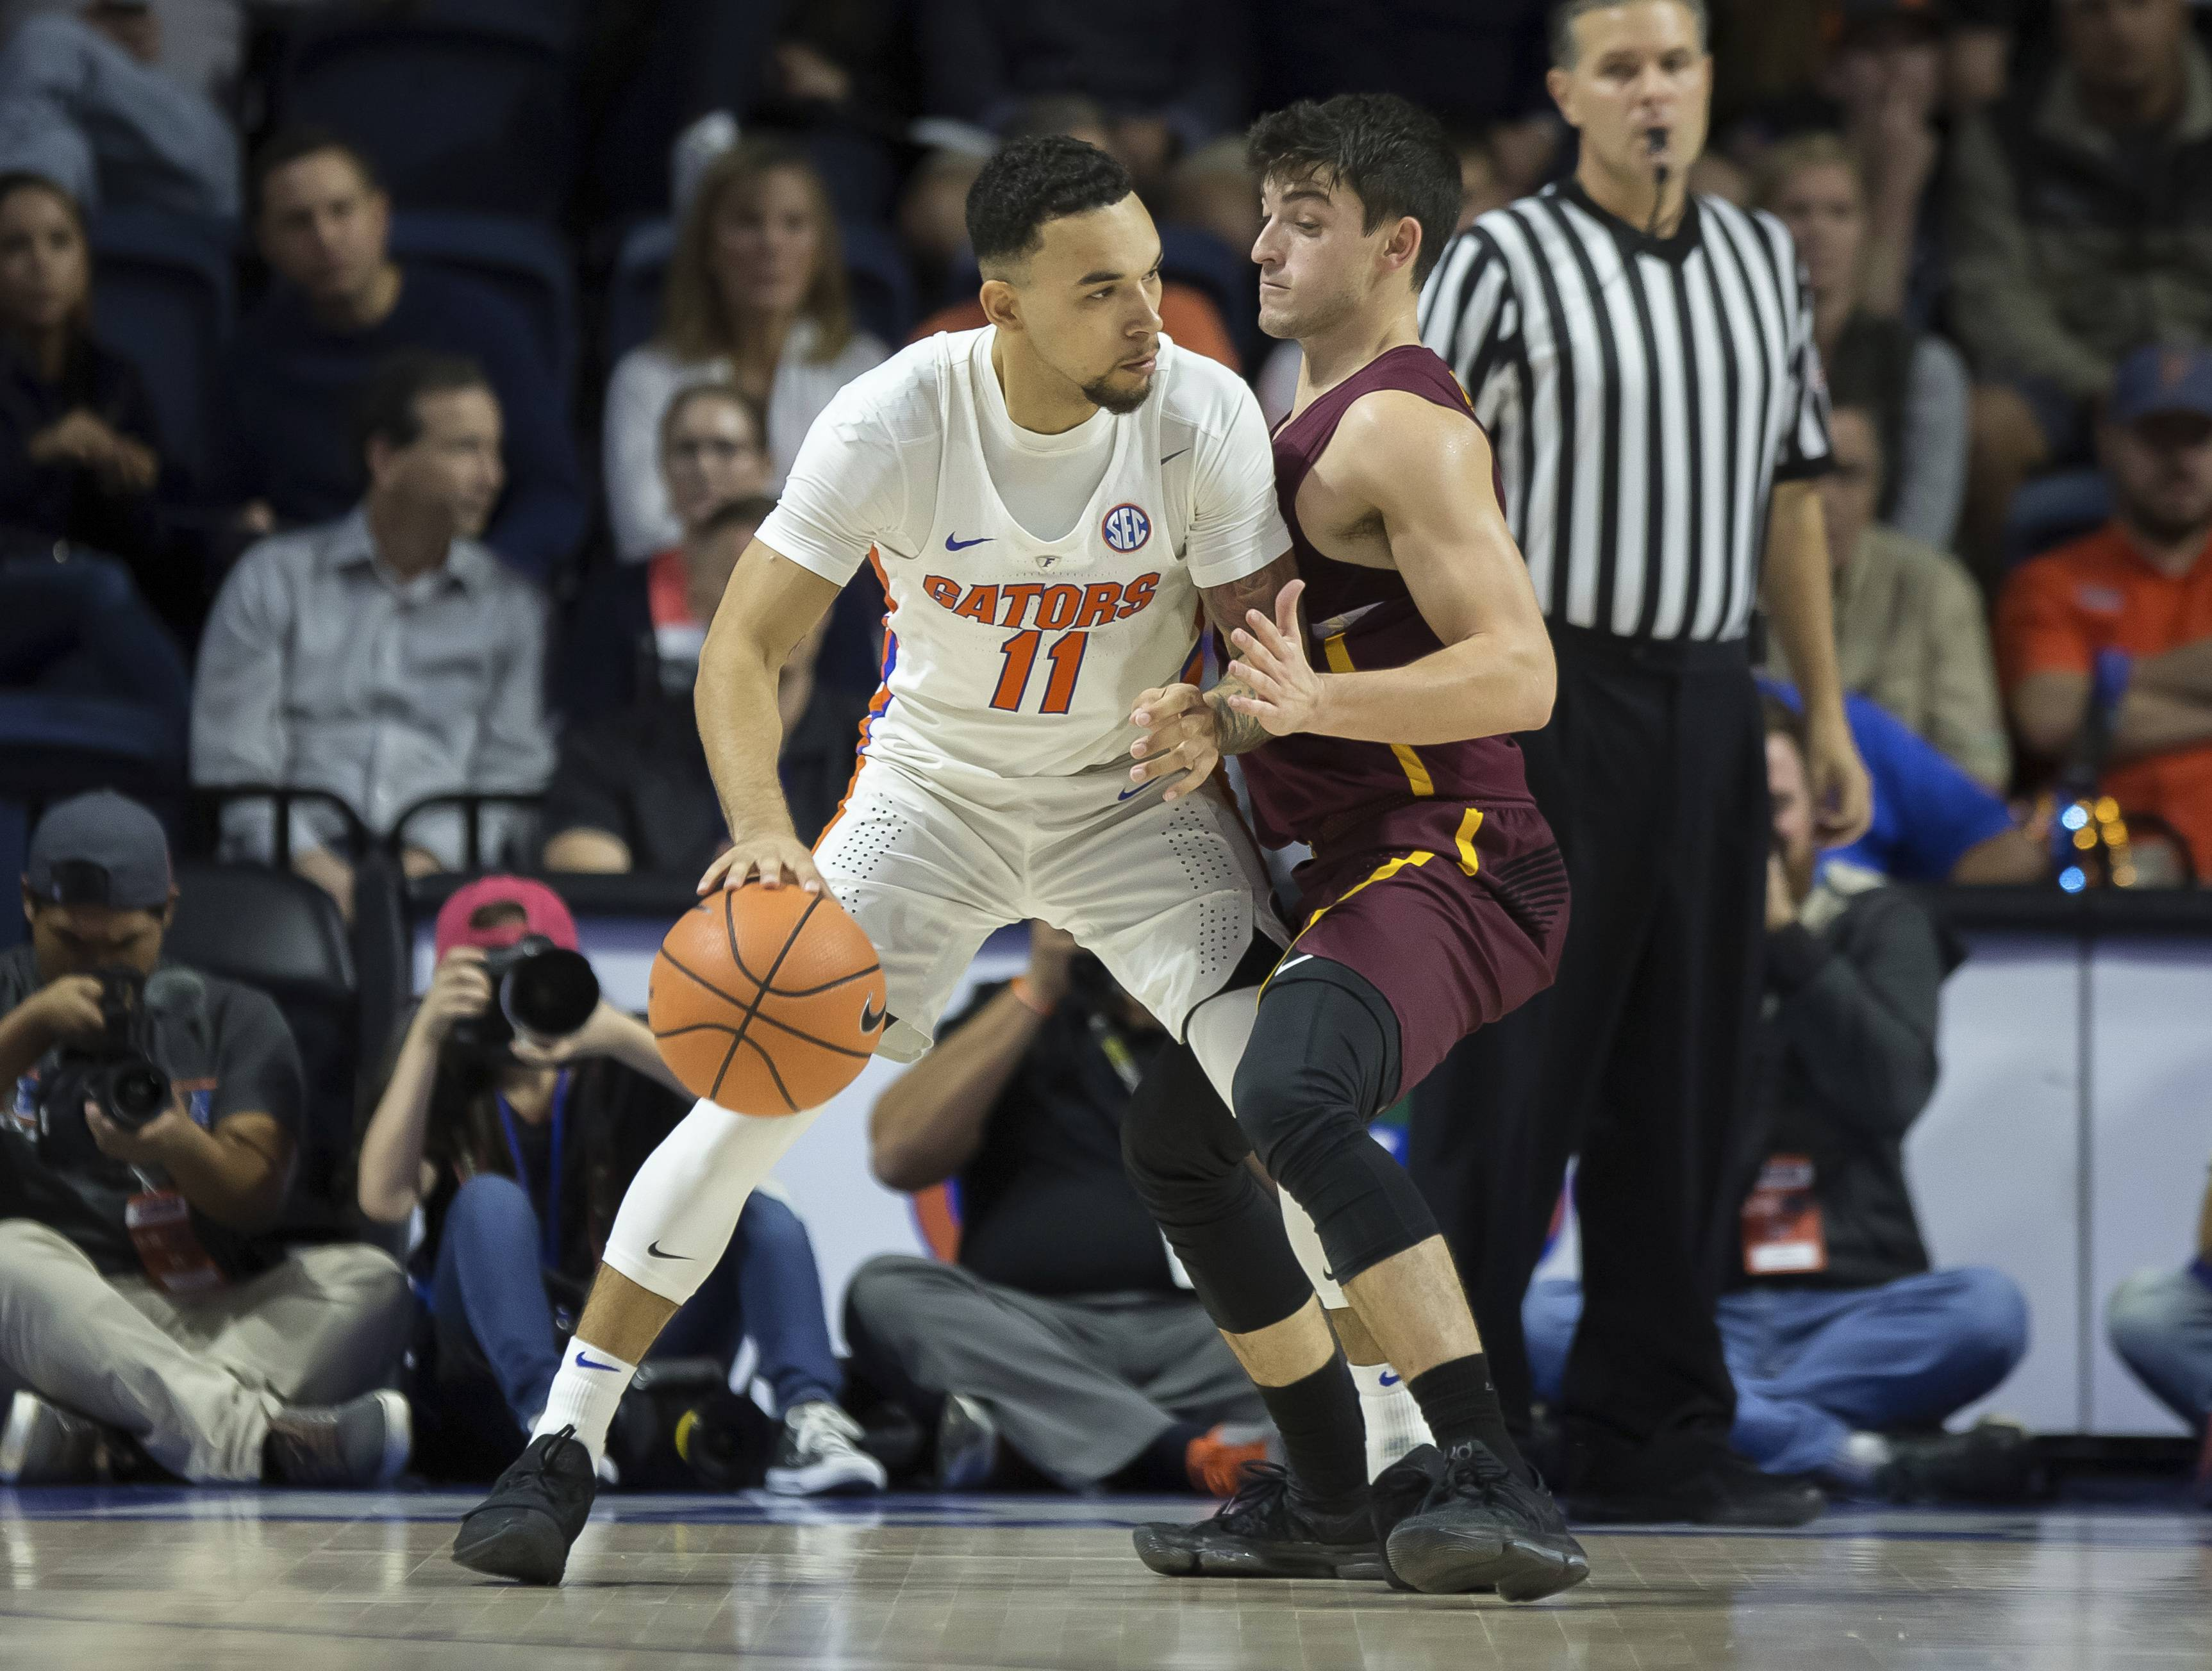 Loyola of Chicago guard Clayton Custer (13) plays tight defense against Florida guard Chris Chiozza (11) during the first half of an NCAA college basketball game in Gainesville, Fla., Wednesday, Dec. 6, 2017.